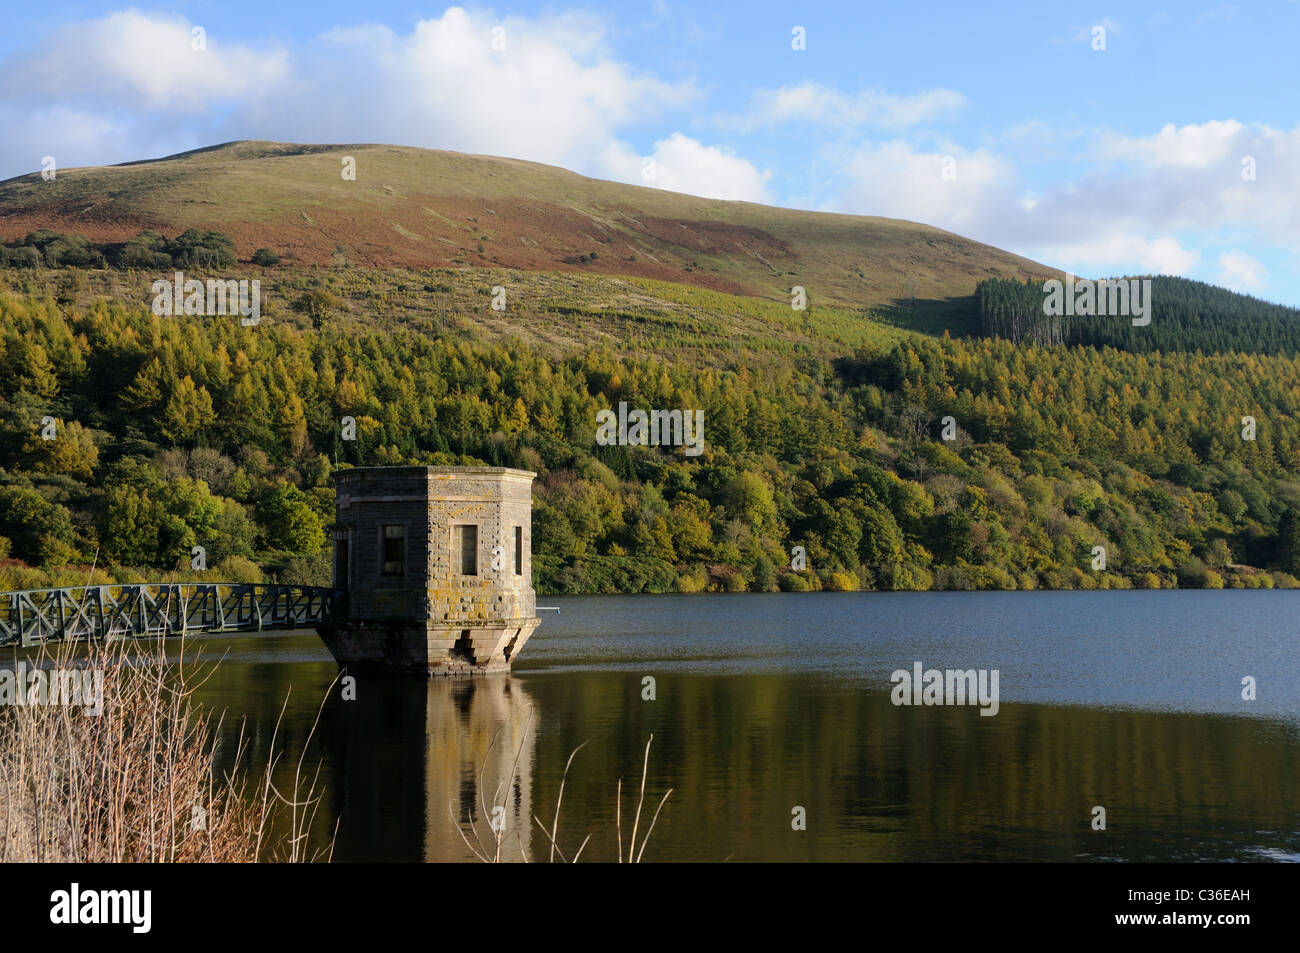 Talybont Reservoir in the Brecon Beacons of Wales - Stock Image